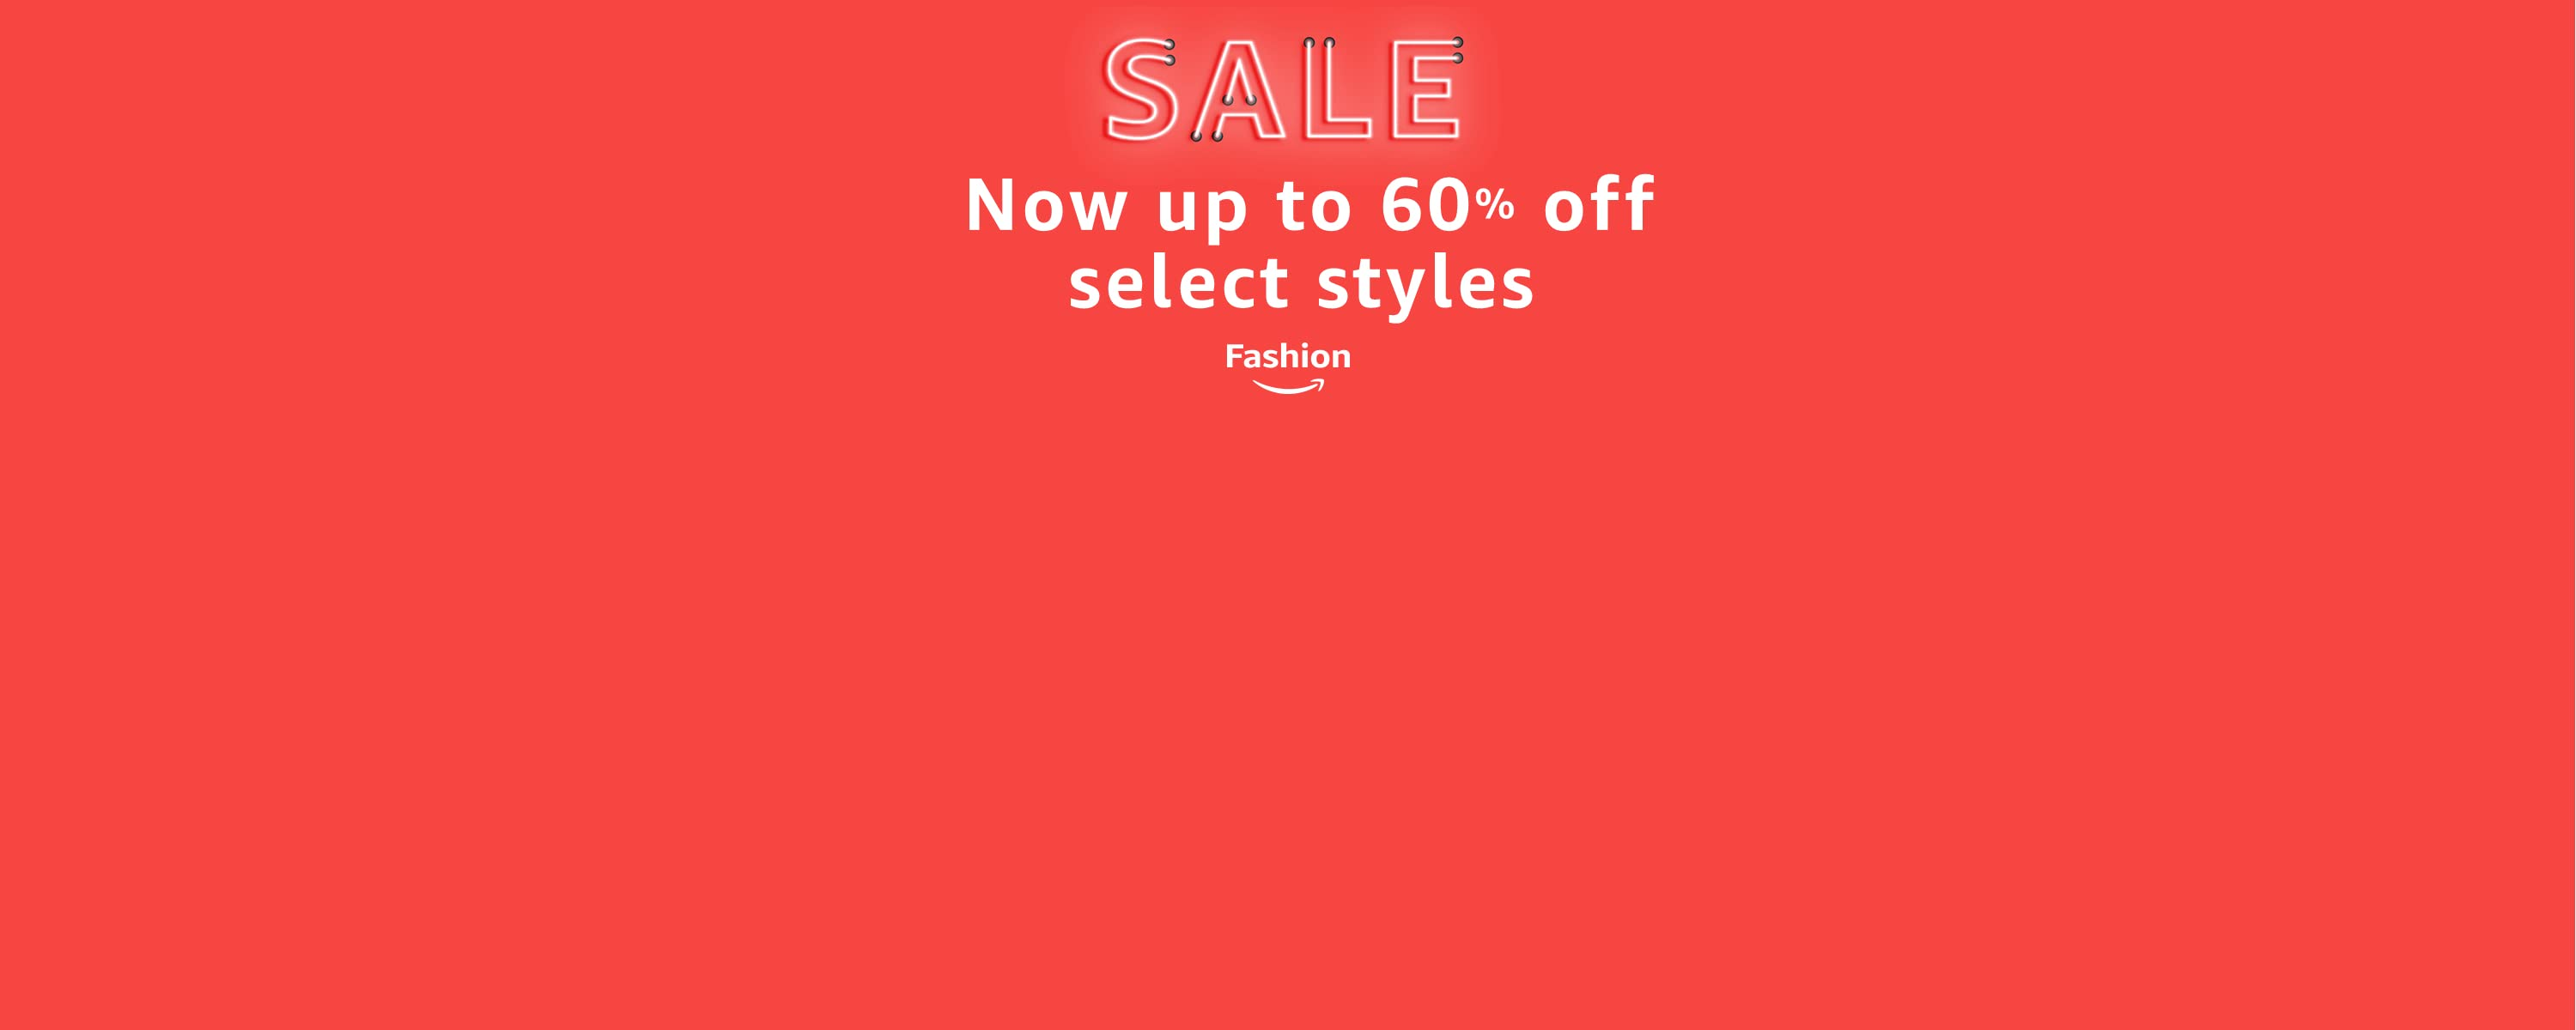 Shop the fashion sale